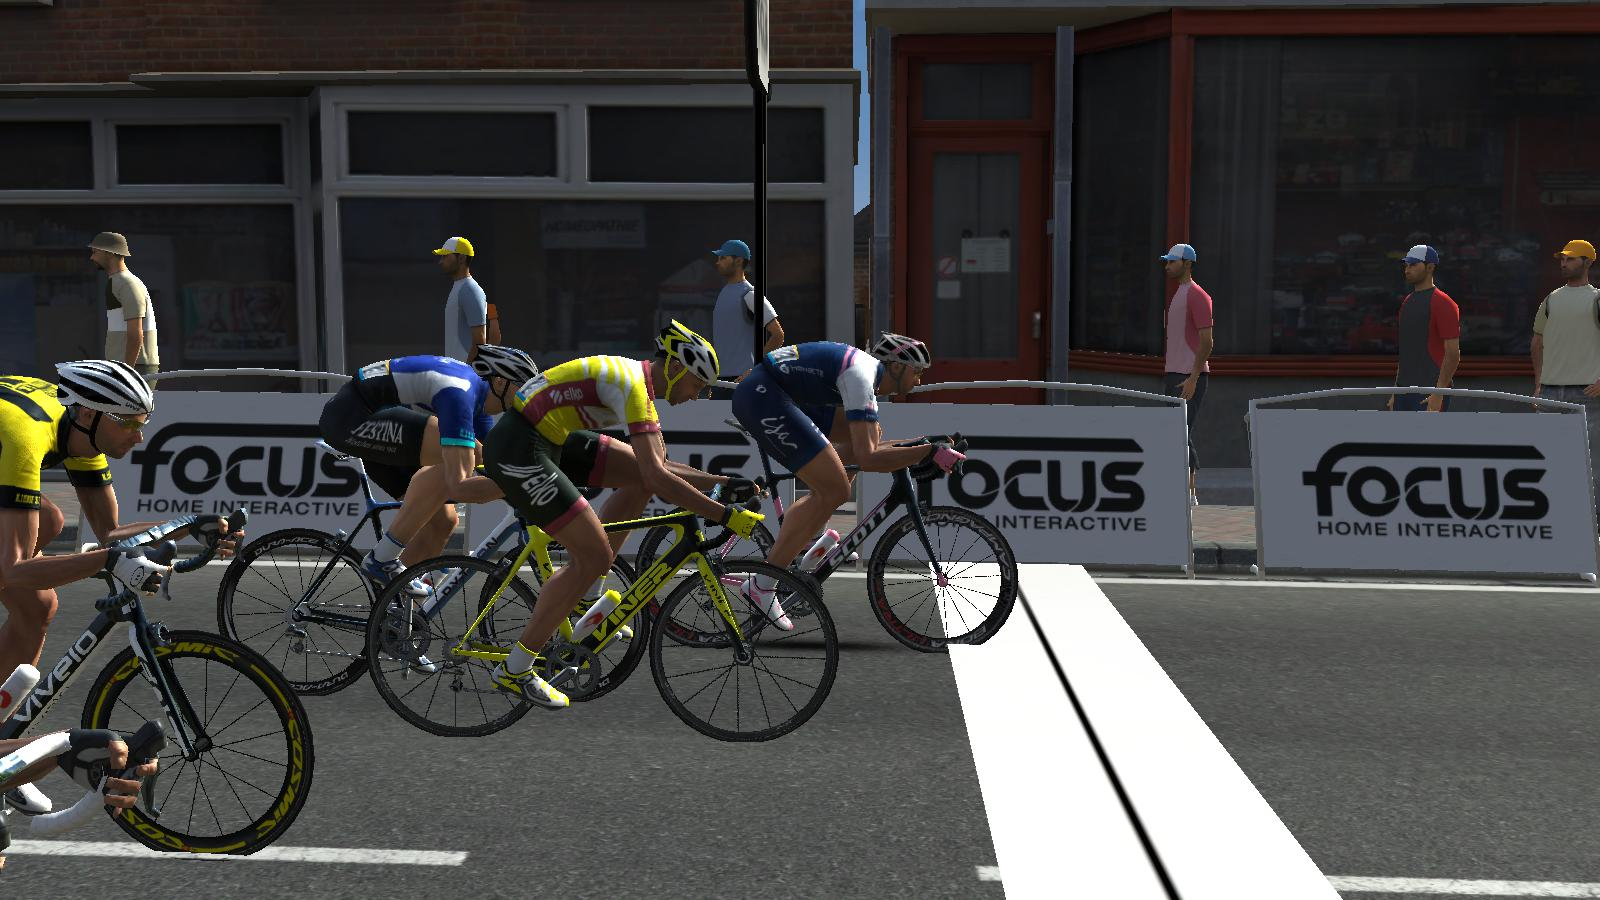 pcmdaily.com/images/mg/2019/Races/PTHC/Rheden/44.jpg